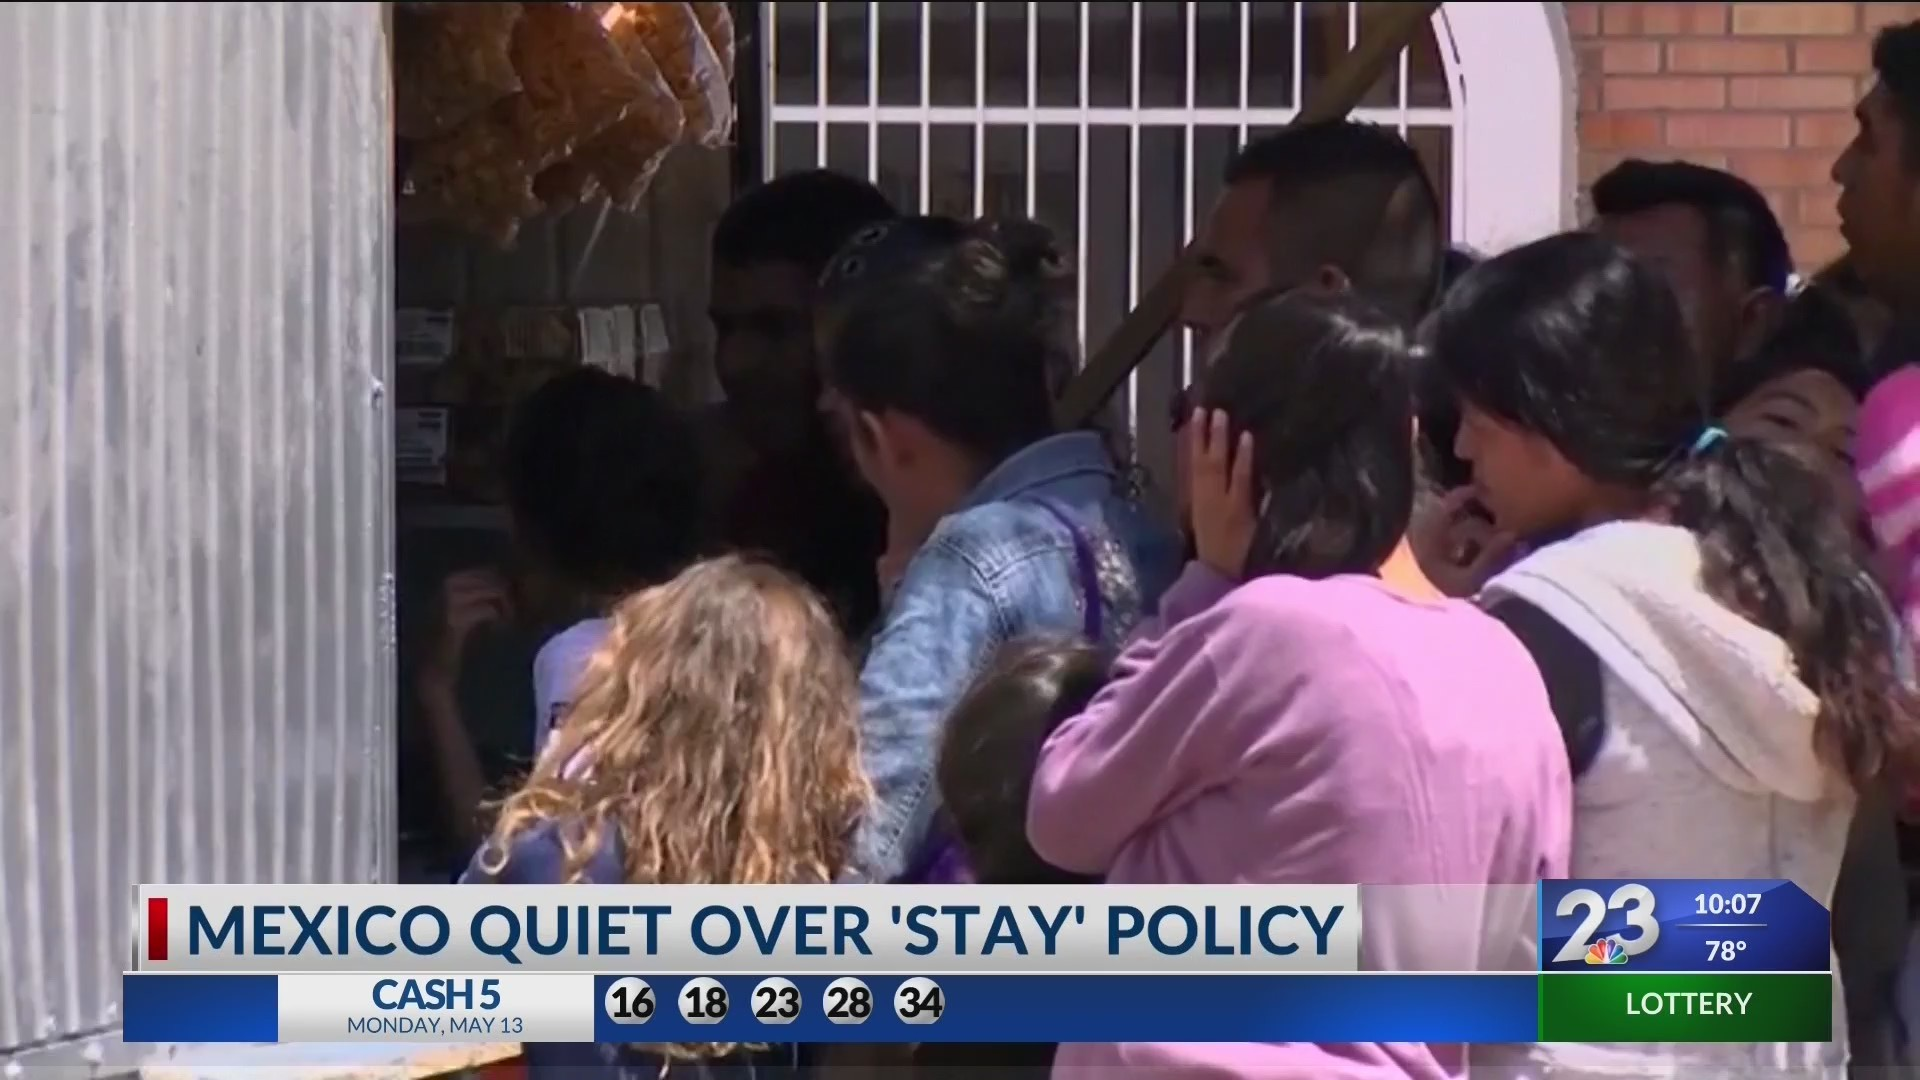 Mexico_quiet_over__Stay__Policy_0_20190515032835